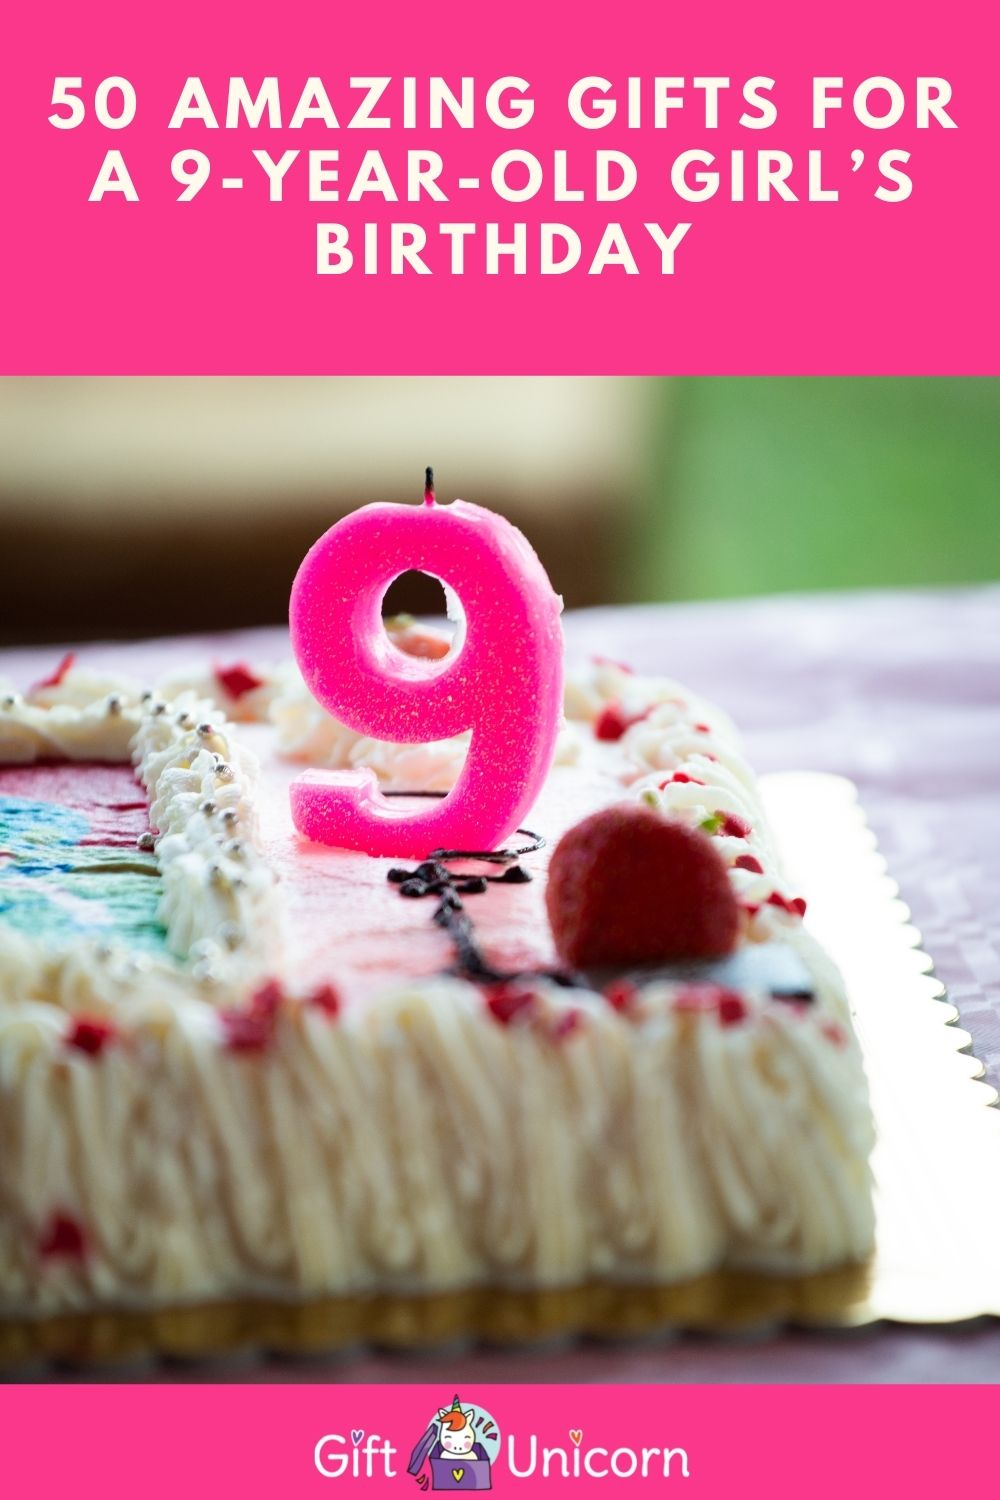 9 years old birthday gifts for a girl pinterest pin image